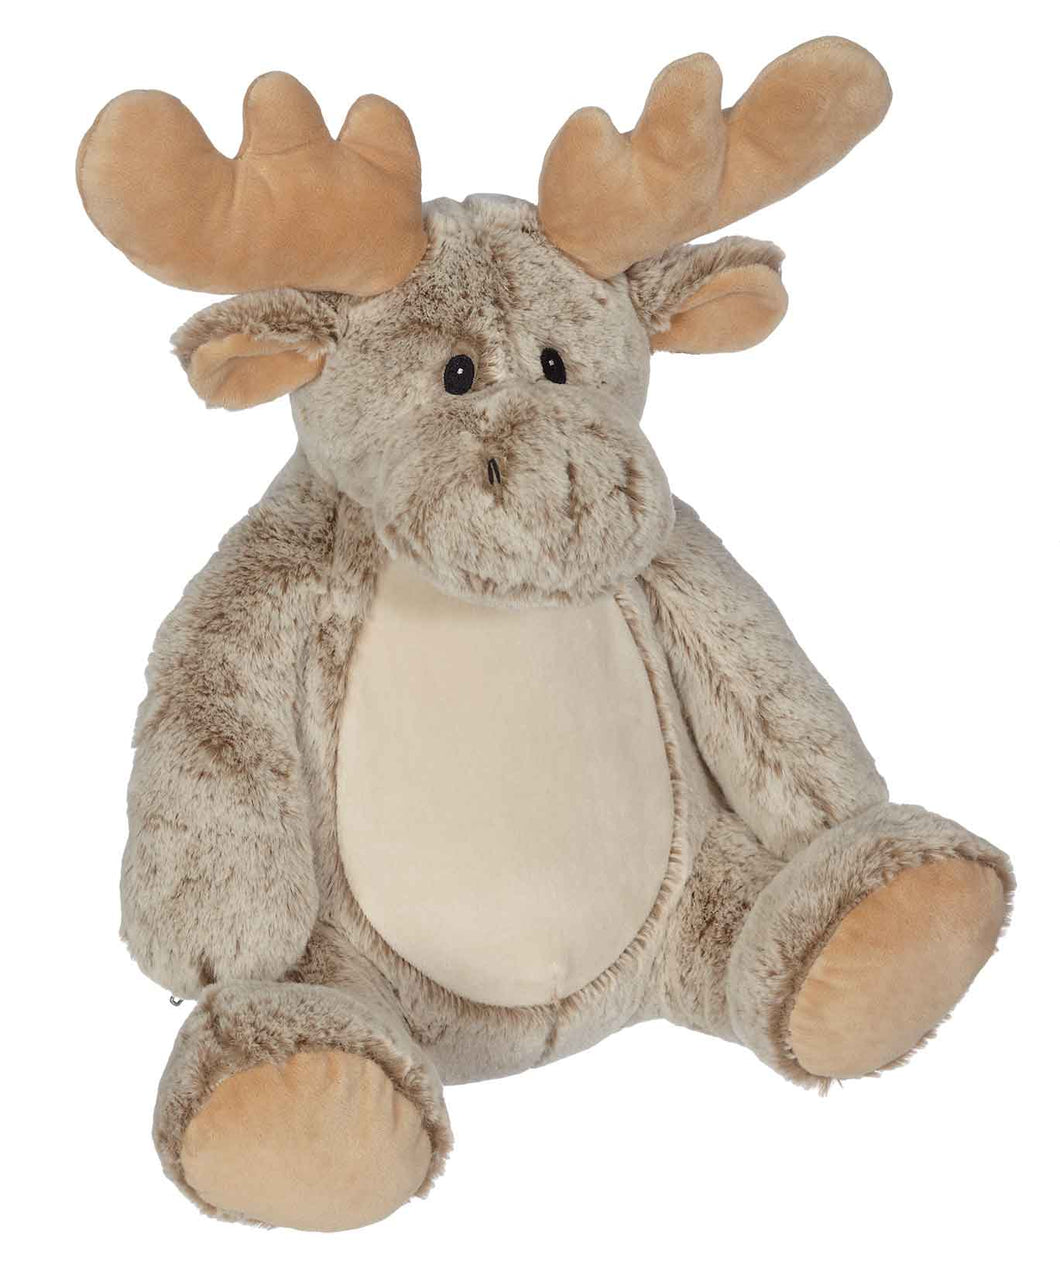 Embroidery Pals - Mason the Moose